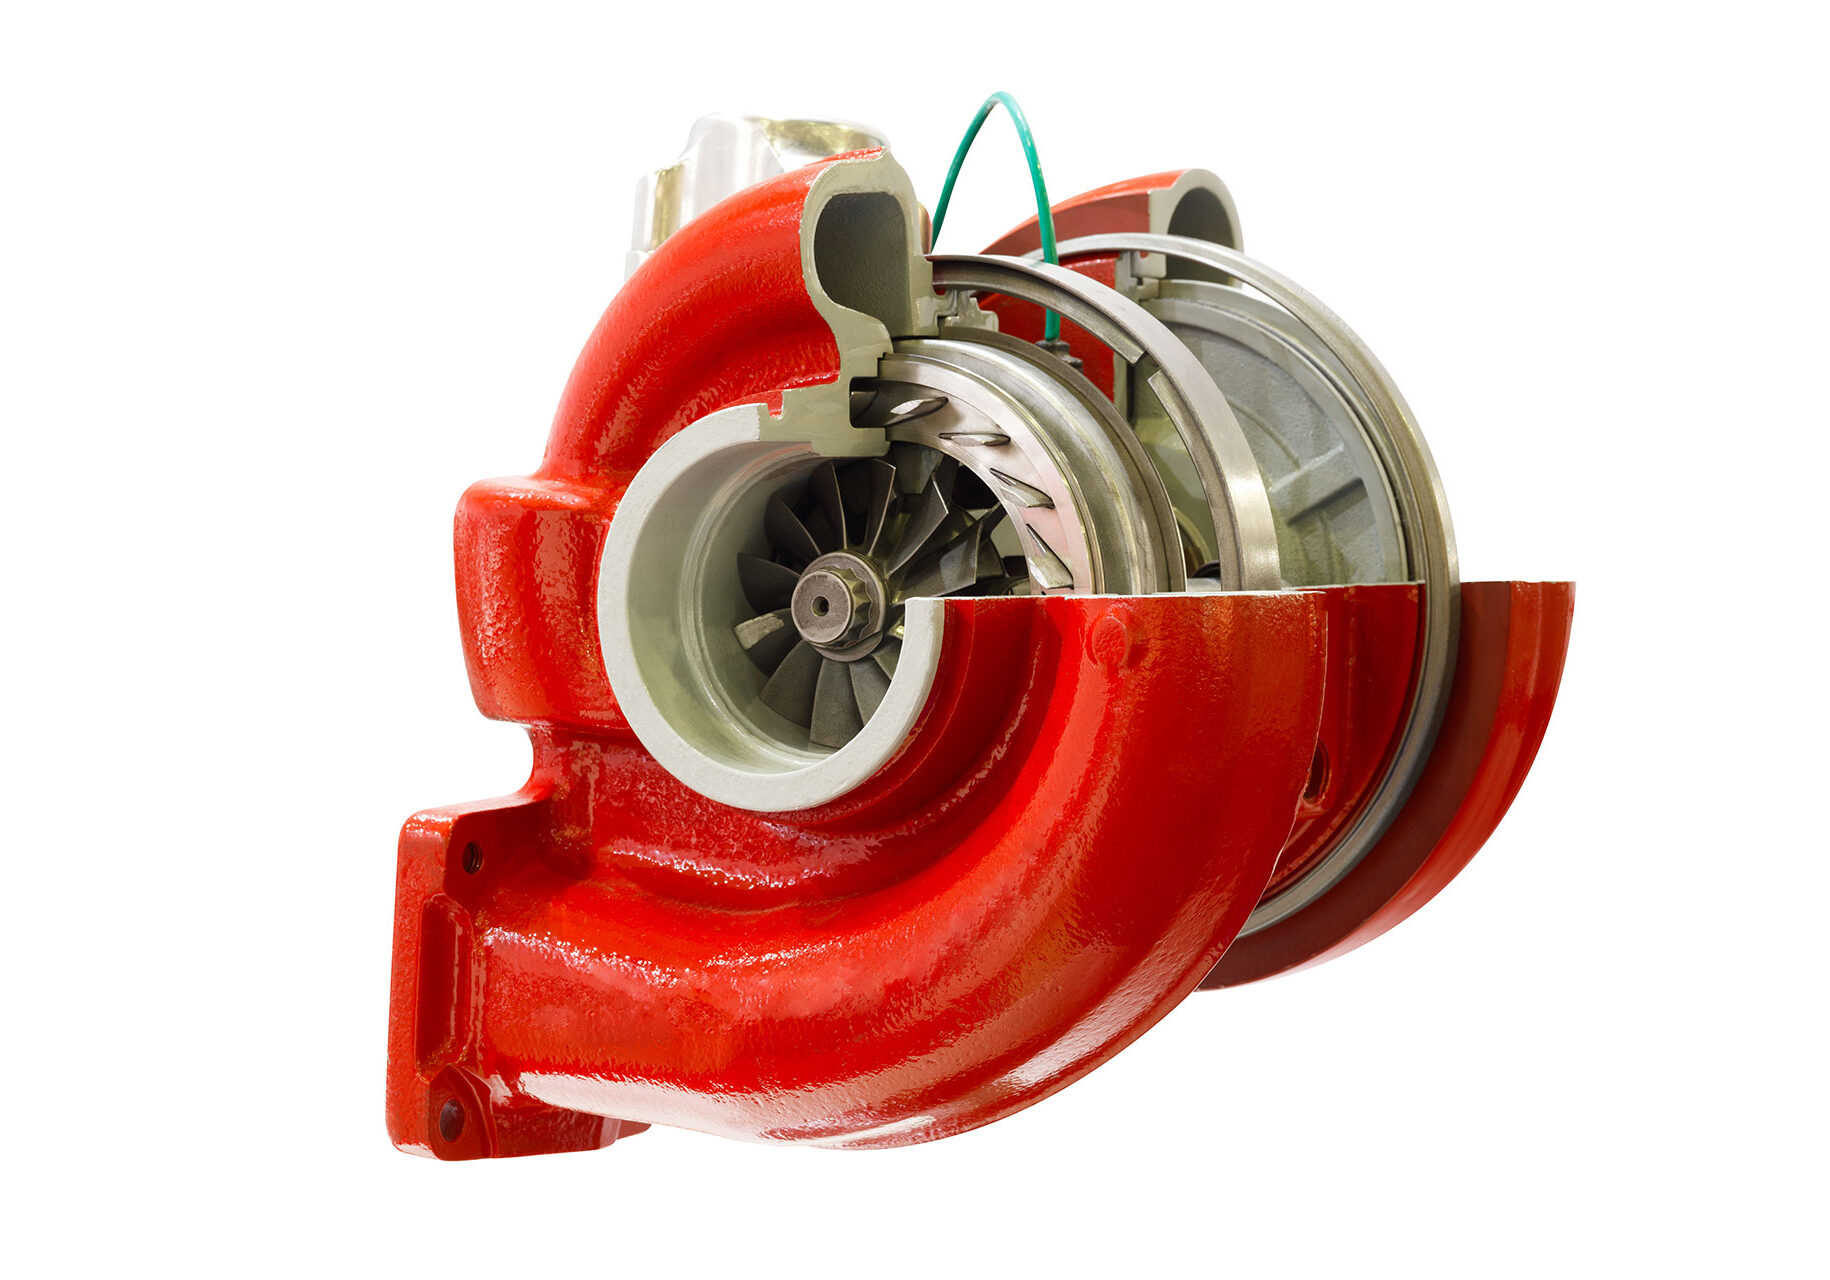 titanium-turbocharger-wheels-for-industrial-heavy-machinery